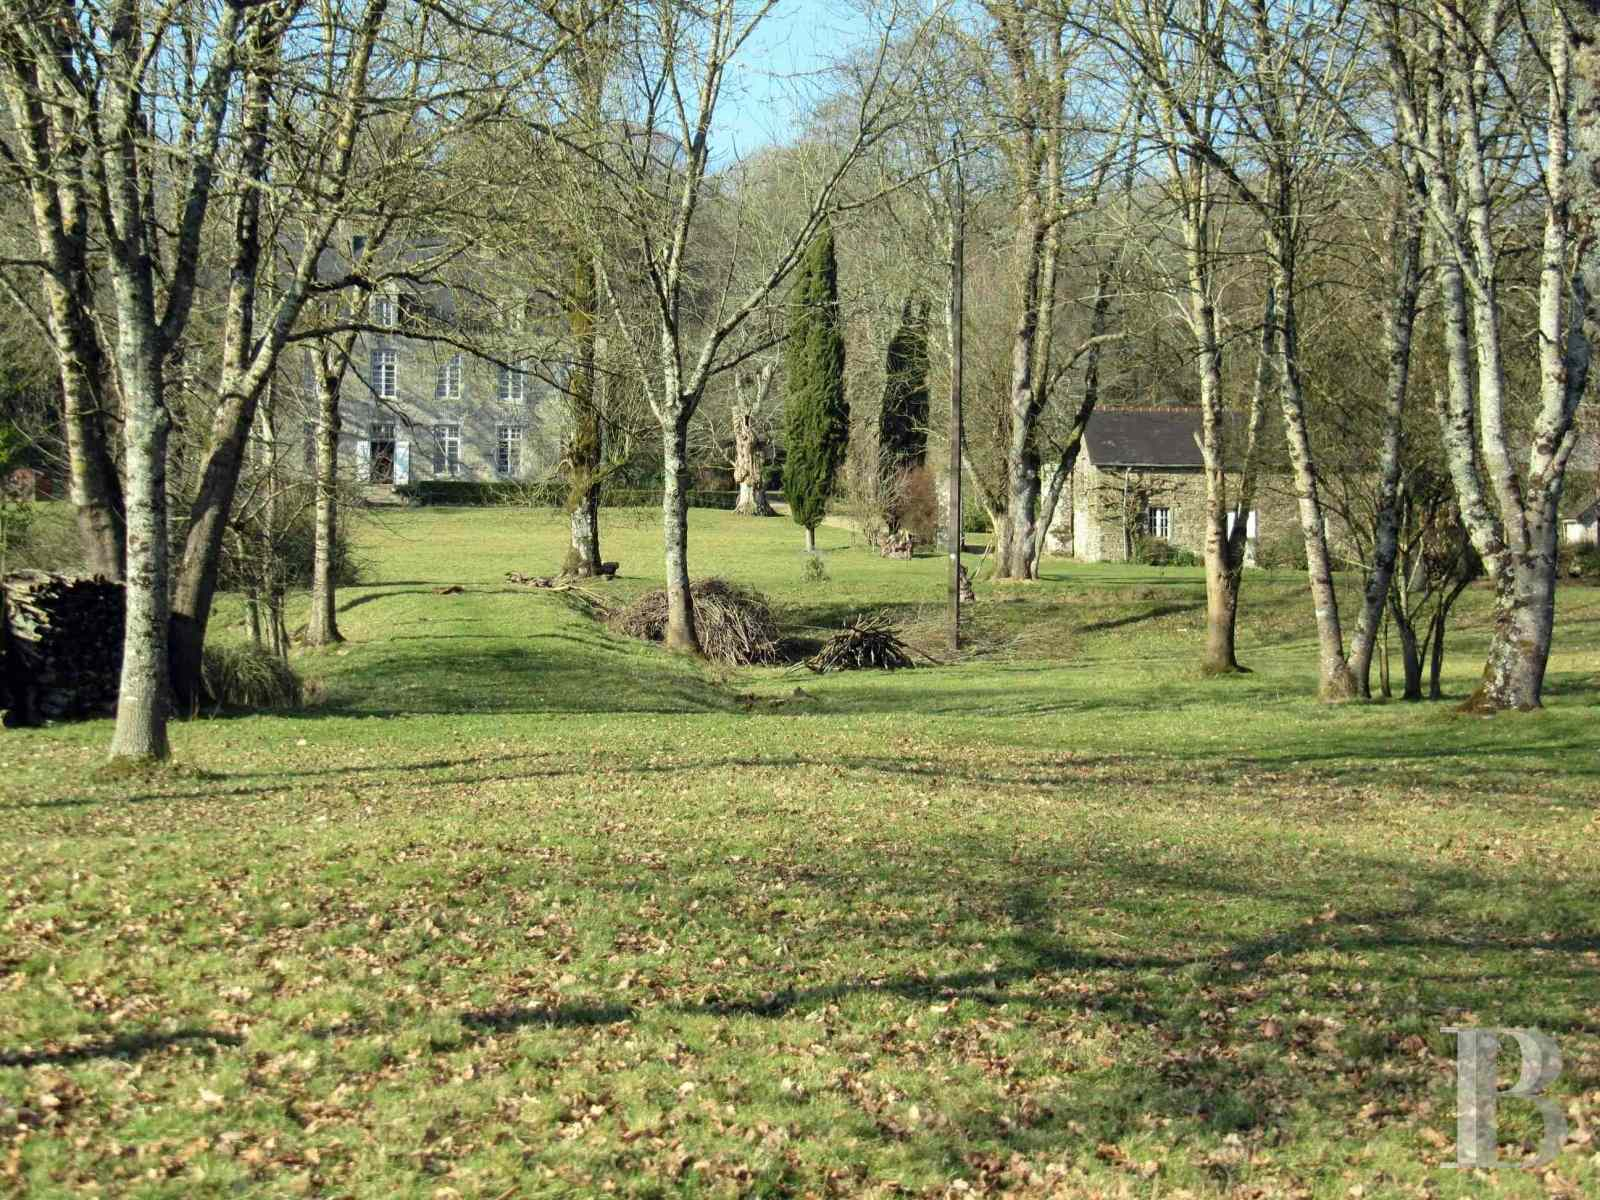 property for sale France brittany morbihan abbey - 14 zoom